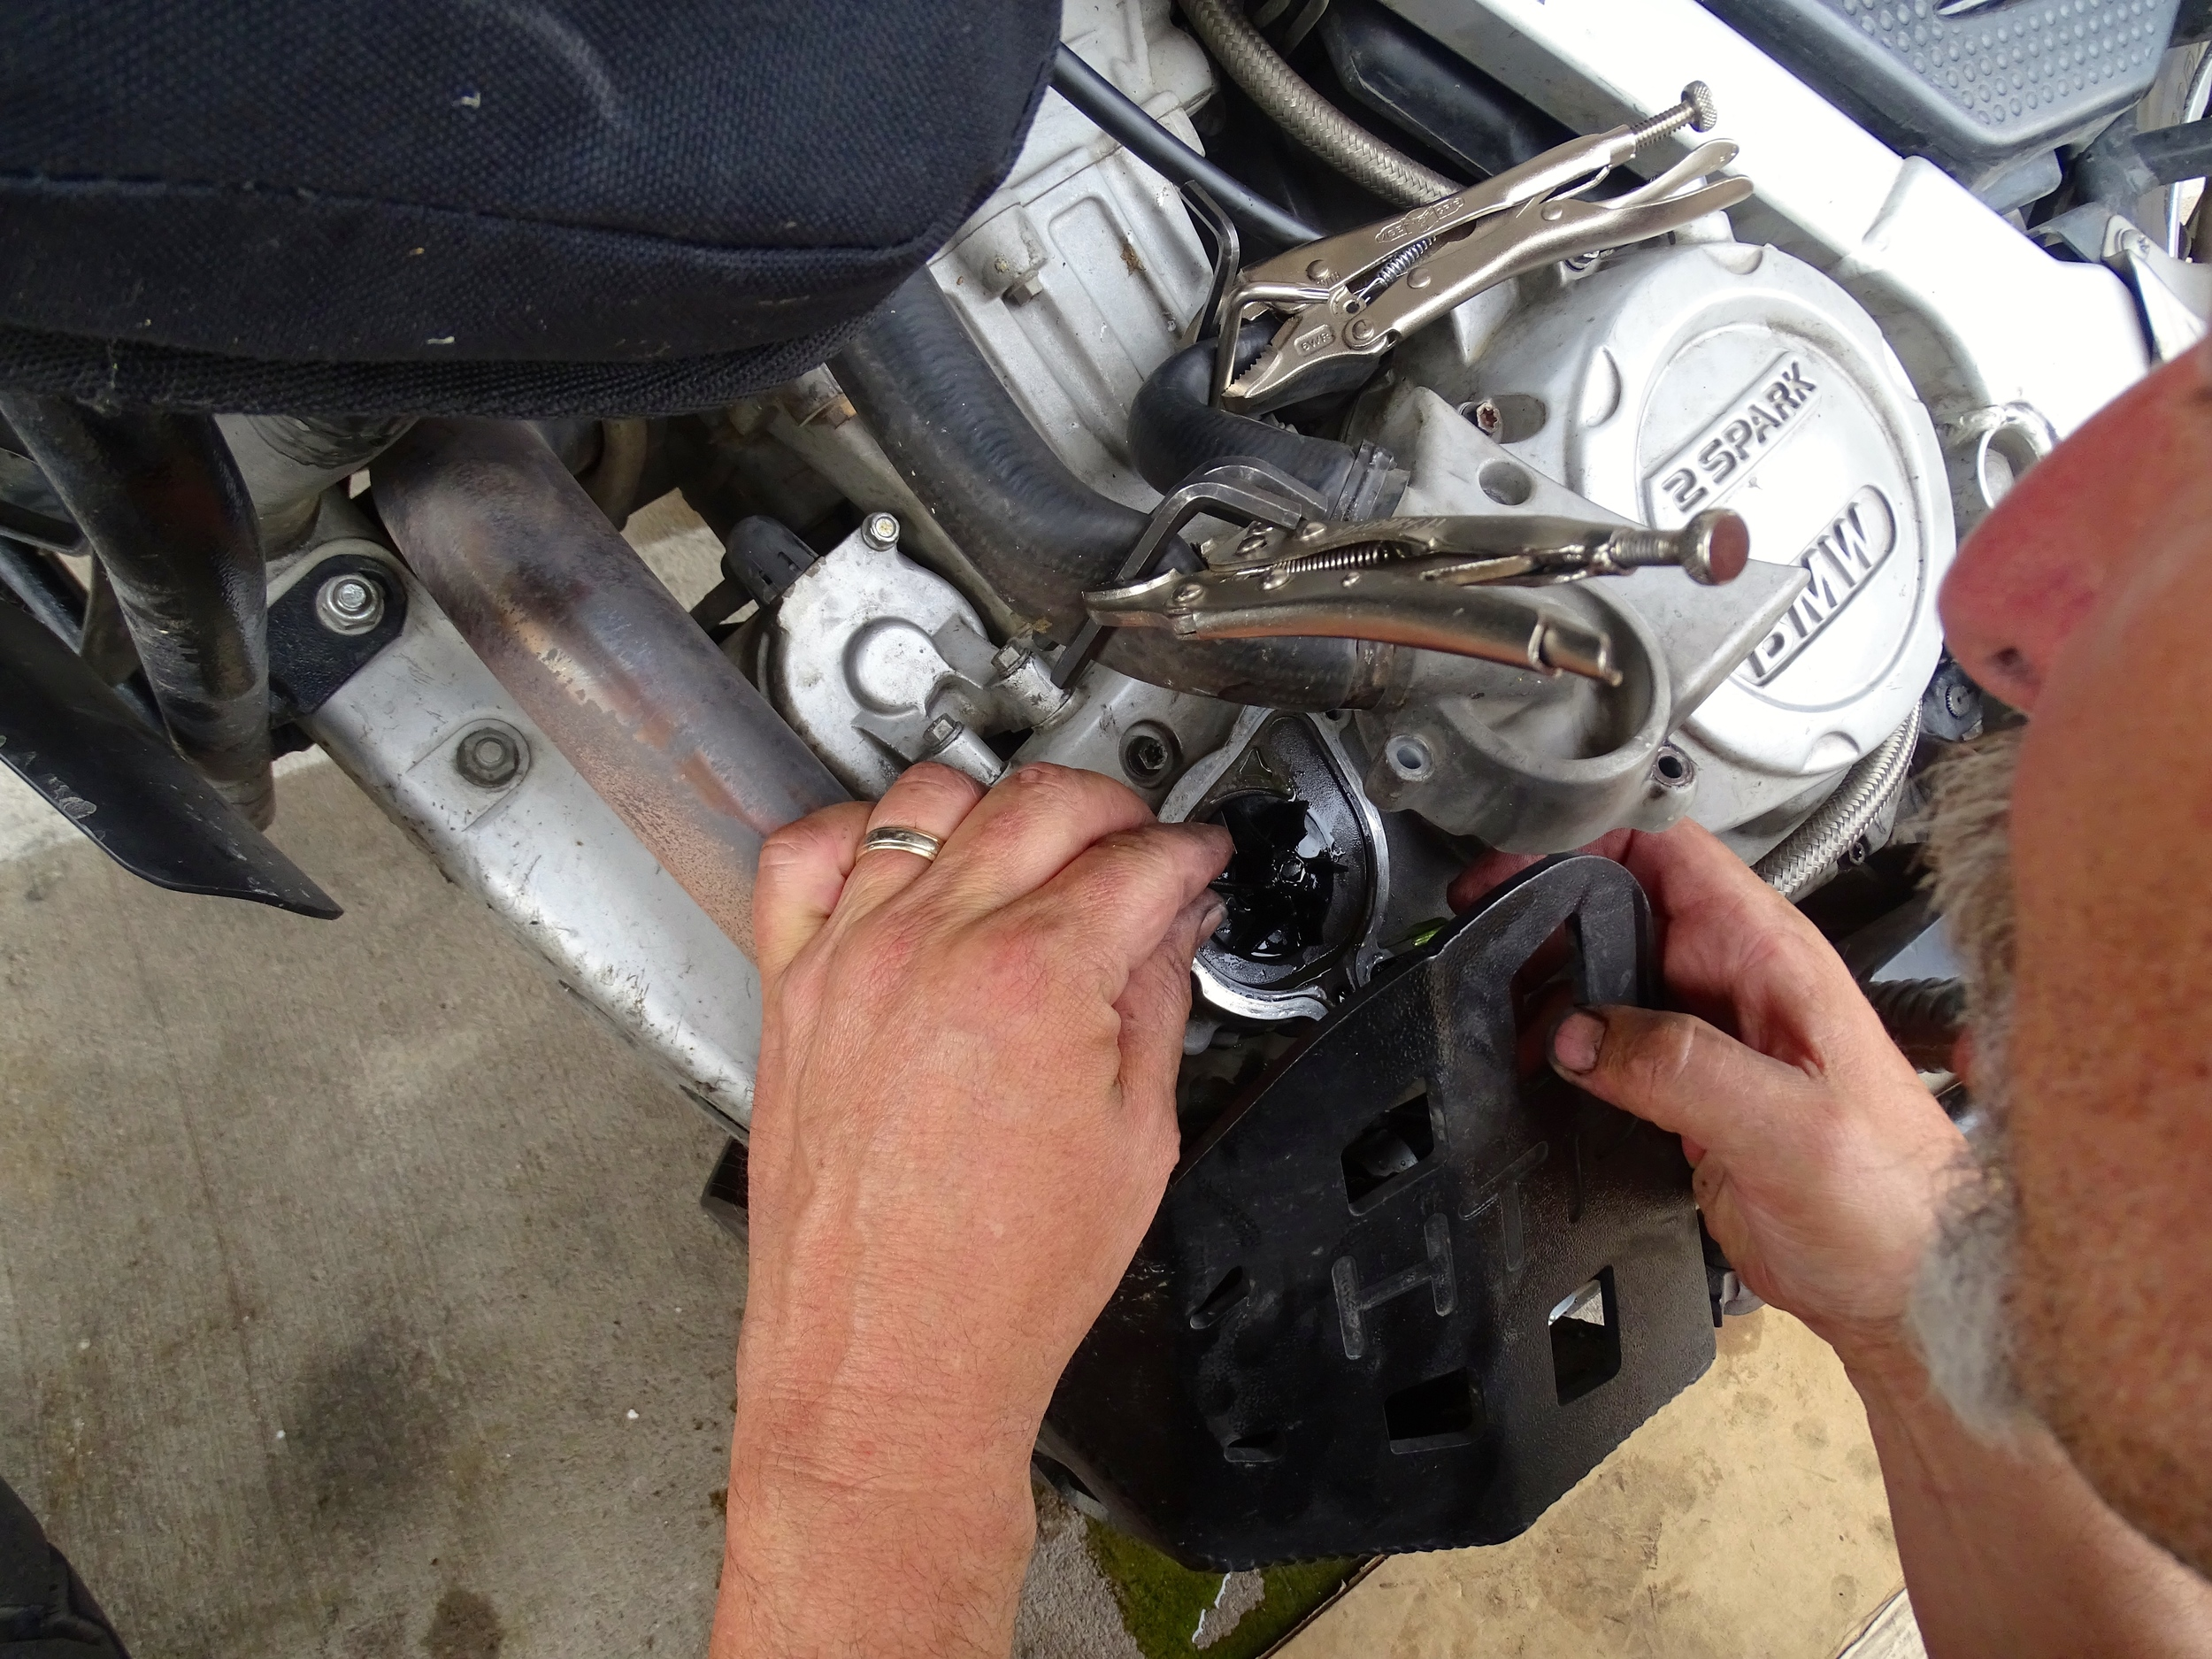 Clever clamping method to double-check the water pump after installation.